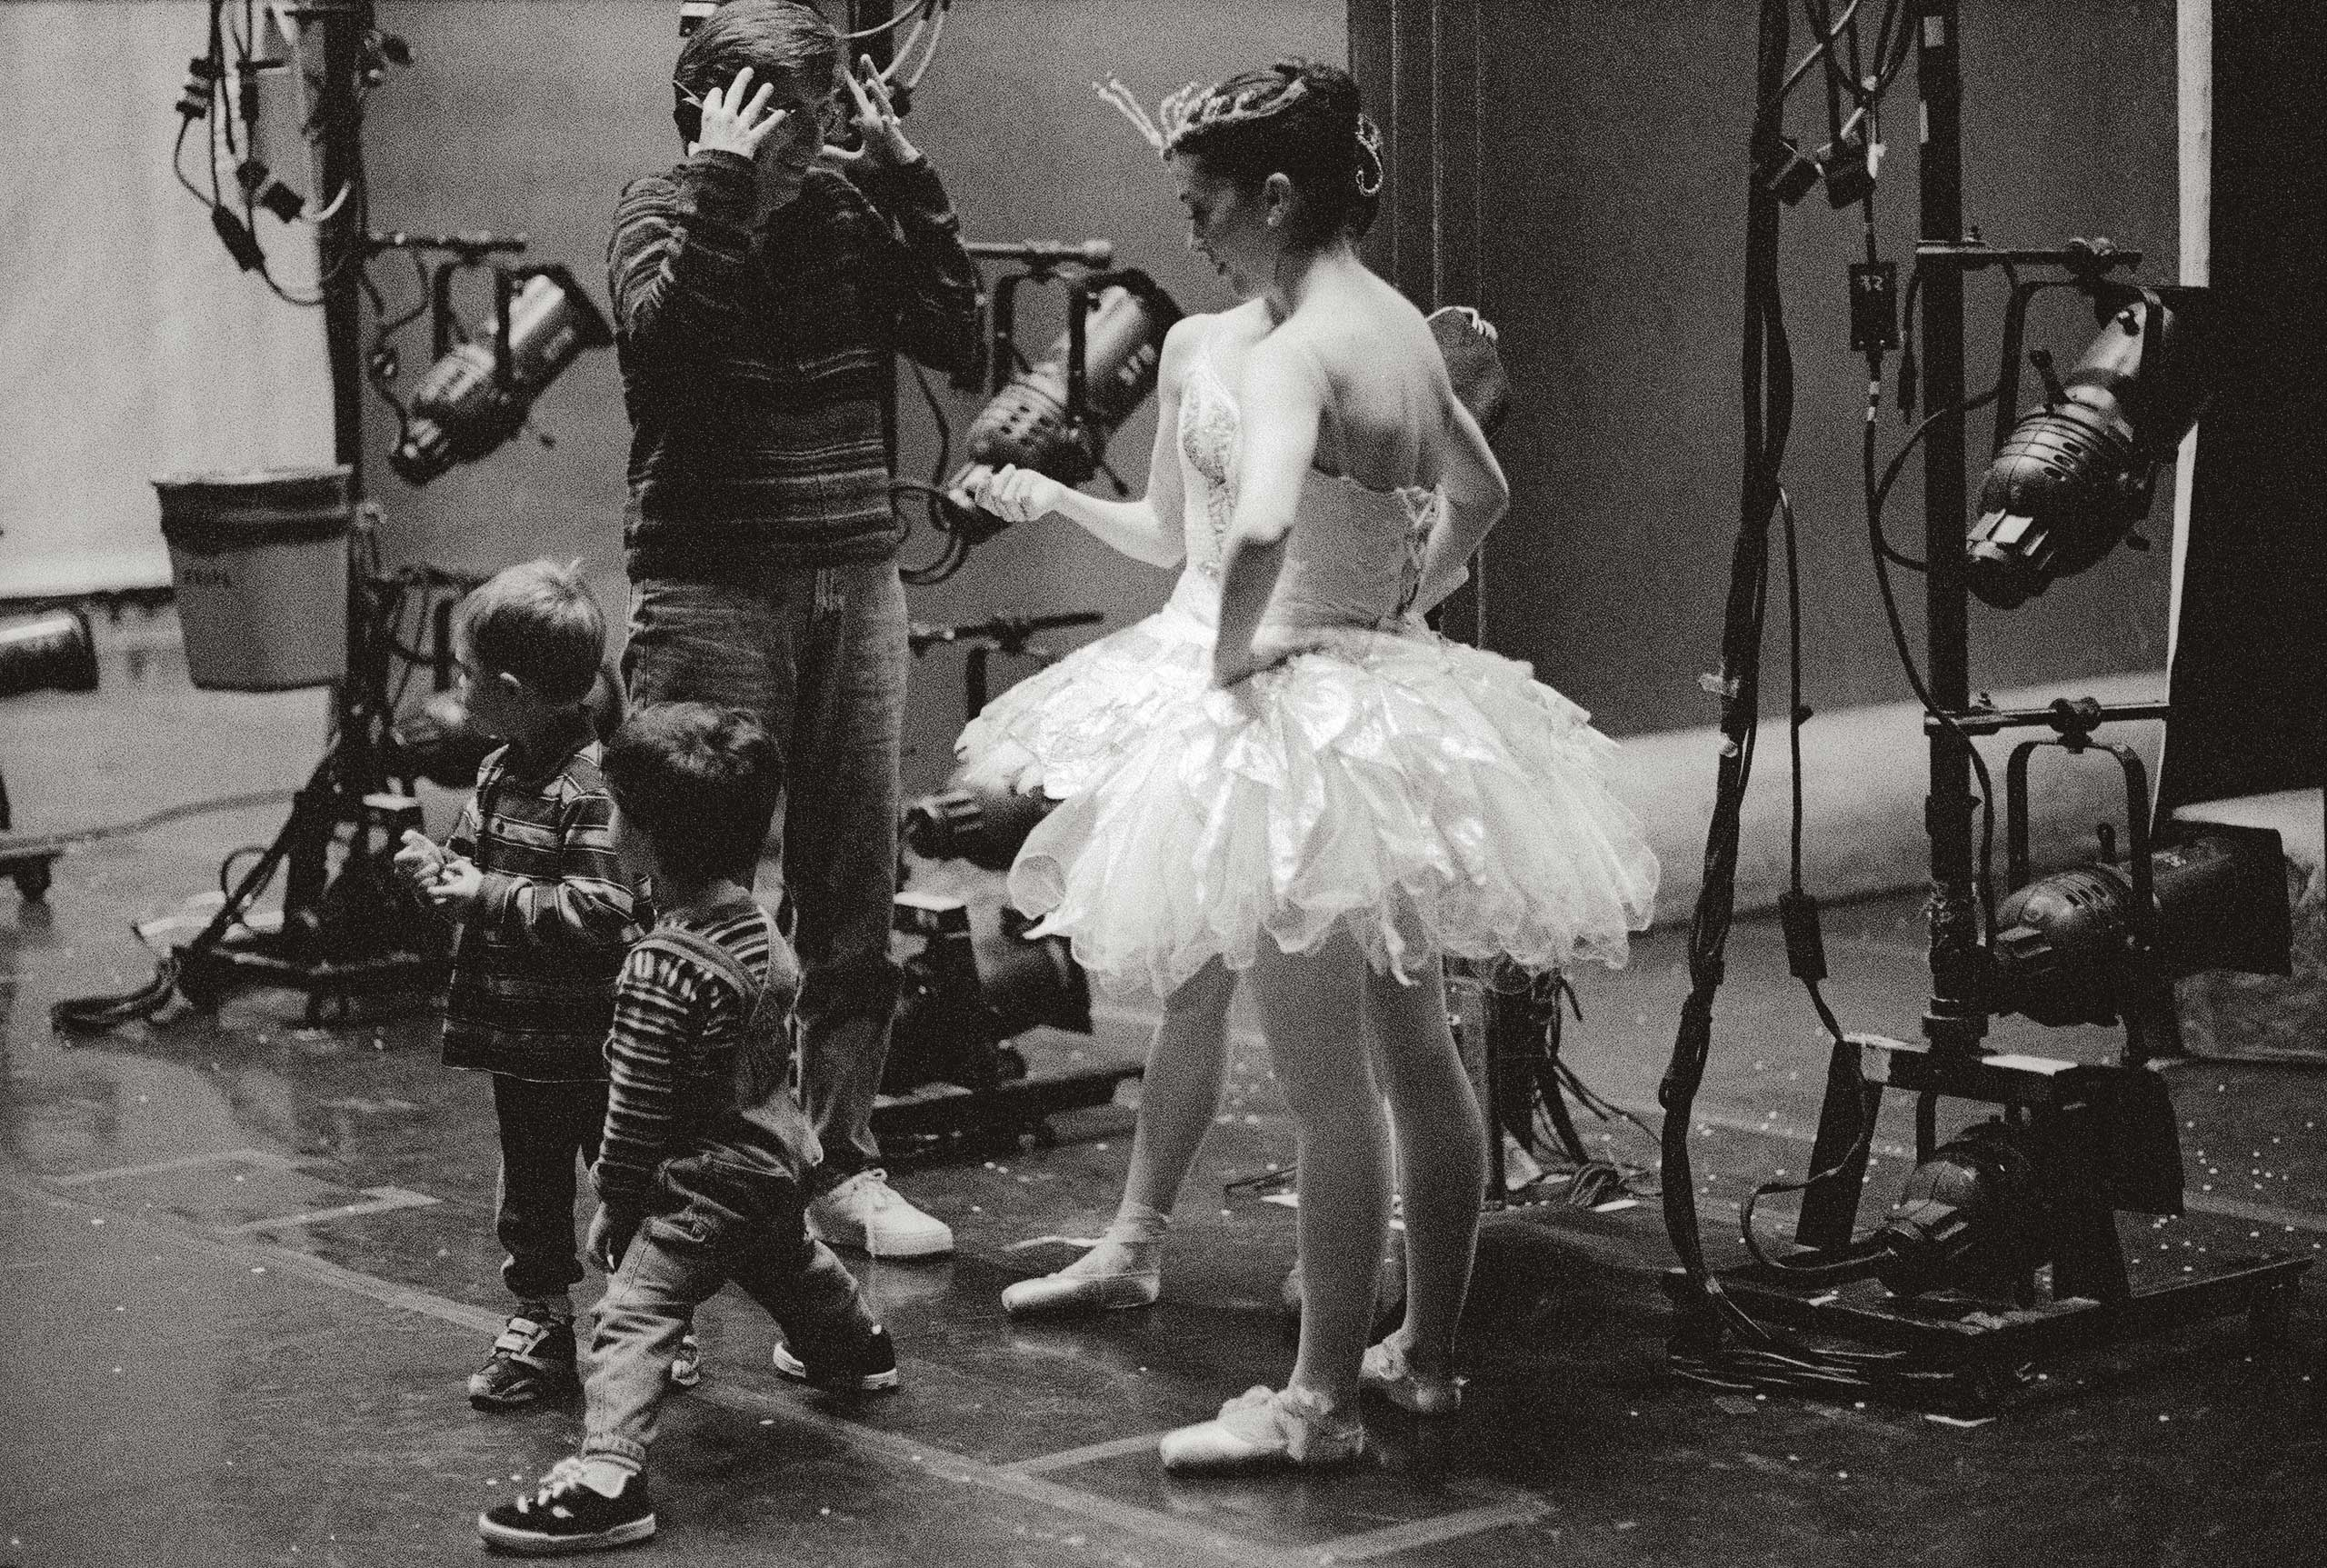 After a dress rehearsal of Nutcracker (Marius Petipa), Kristin shows the stage to Kai and Michael. 2000. Balancing Acts: Three Prima Ballerinas Becoming Mothers.